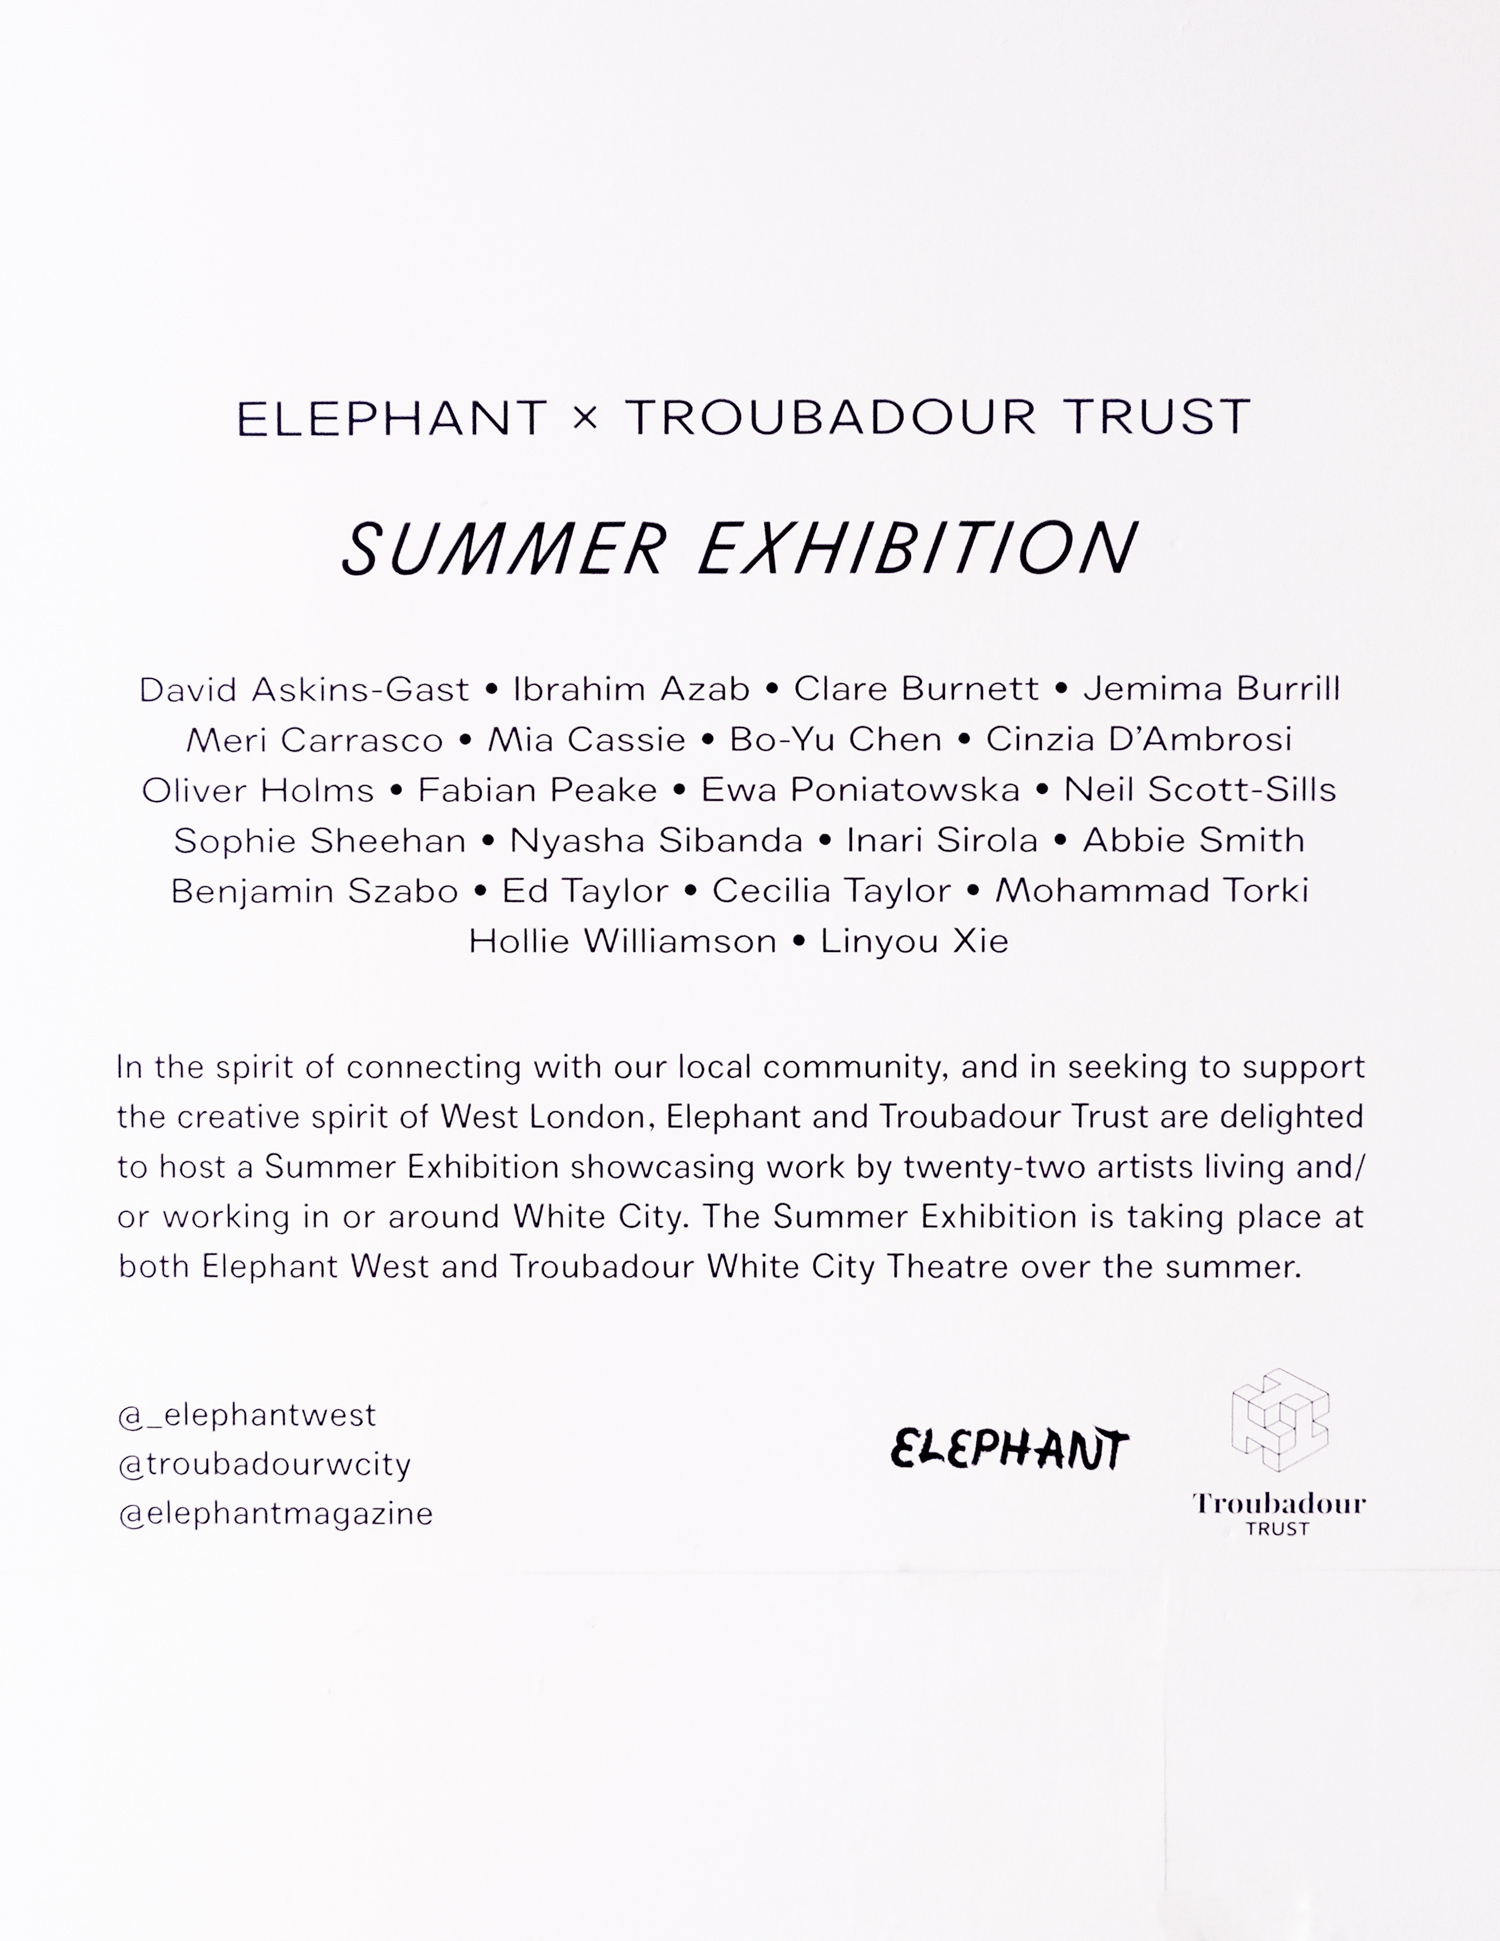 Elephant Magazine Summer Exhibition, Elephant West, White City, 2019.